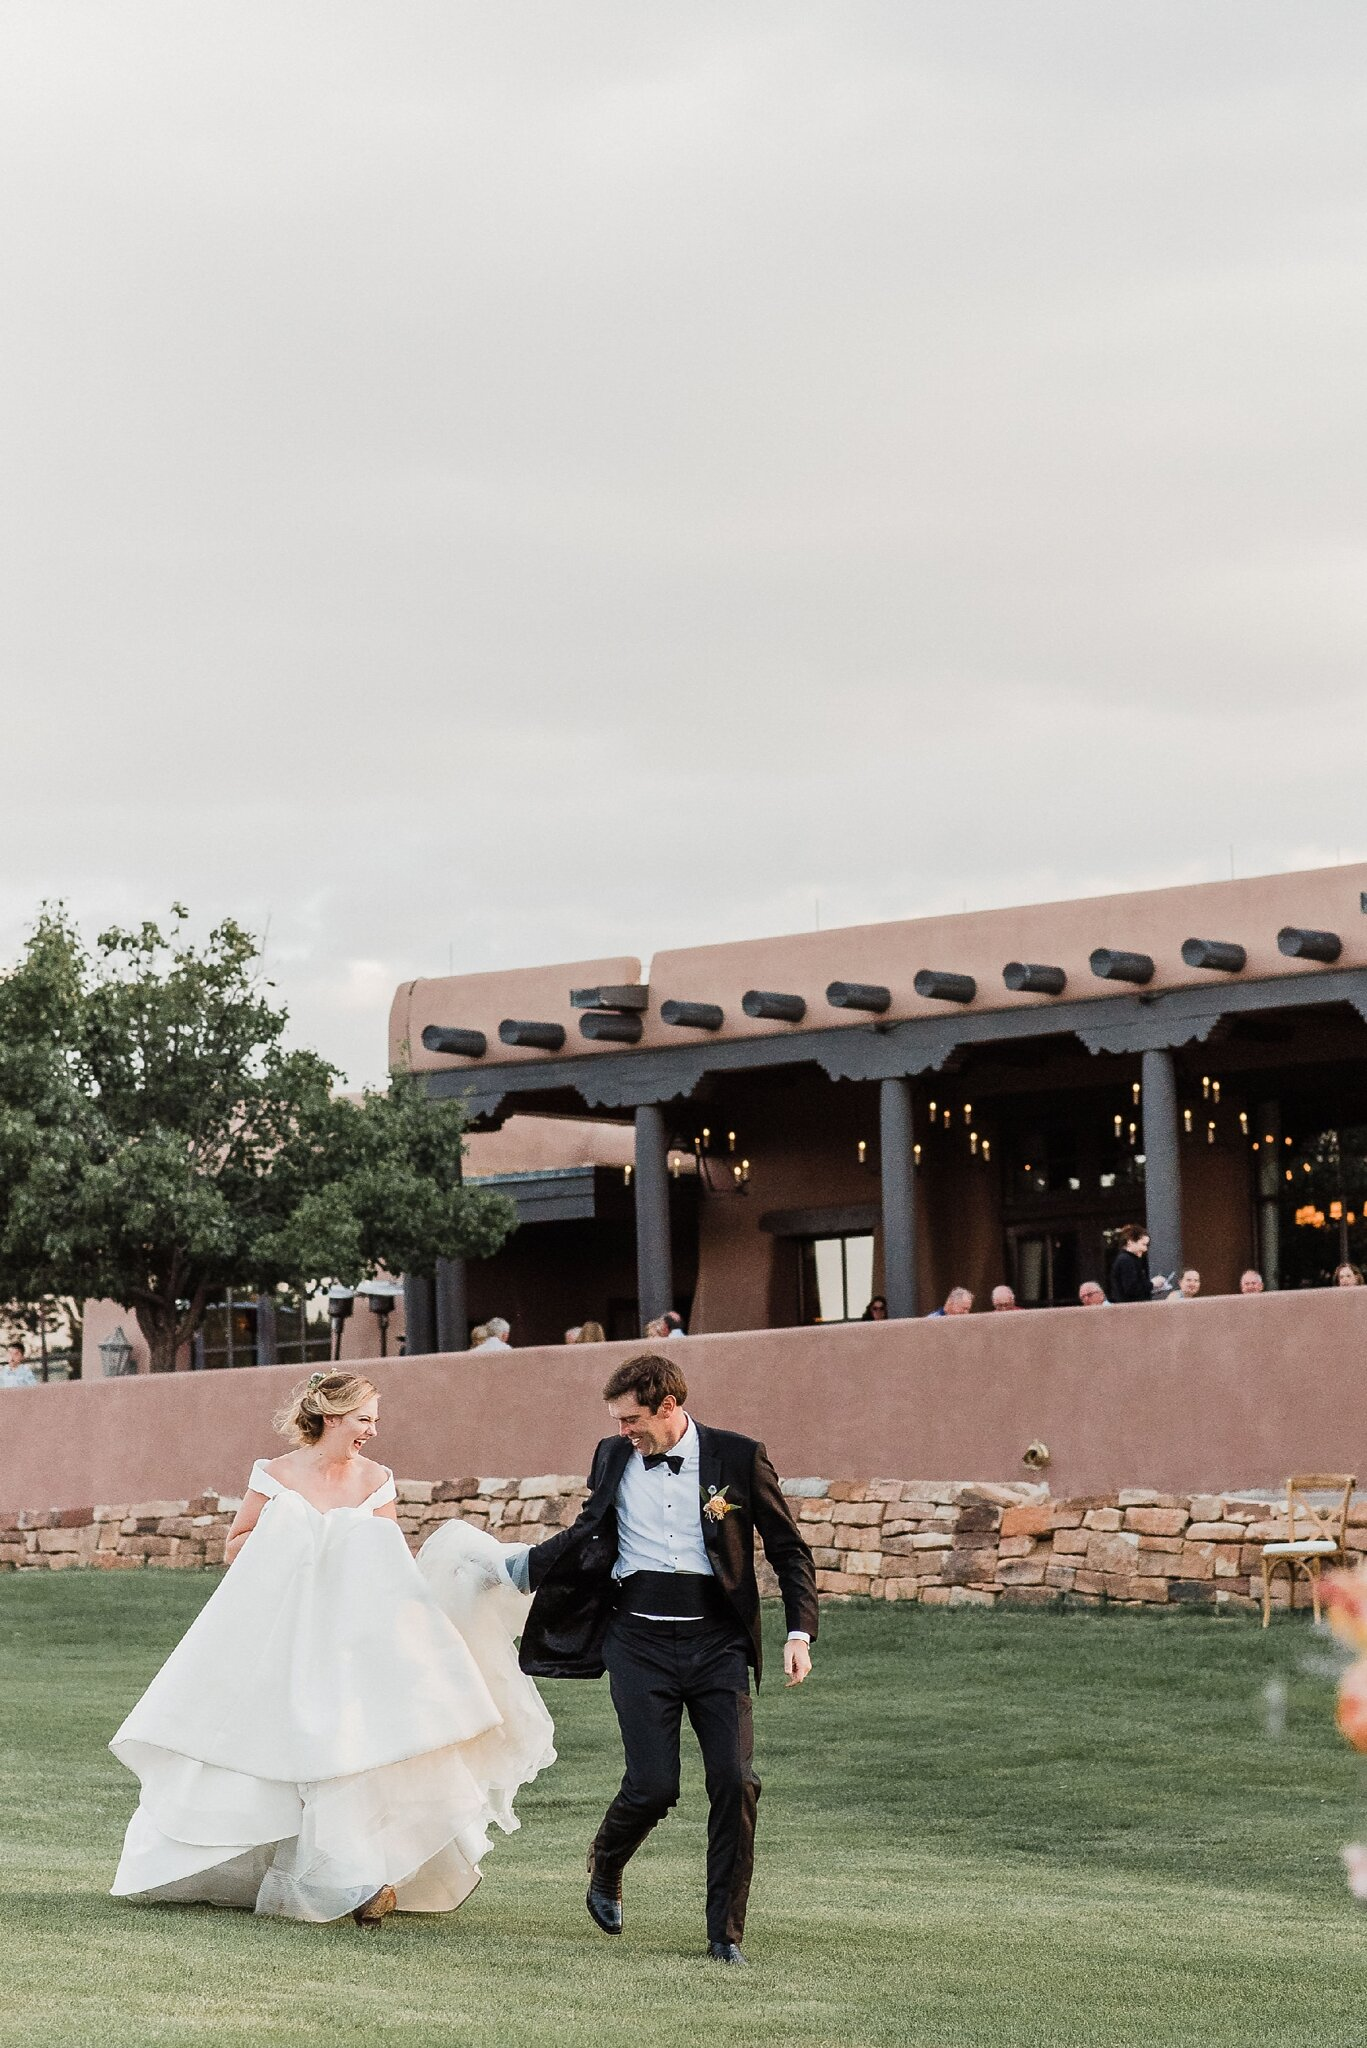 Alicia+lucia+photography+-+albuquerque+wedding+photographer+-+santa+fe+wedding+photography+-+new+mexico+wedding+photographer+-+new+mexico+wedding+-+wedding+-+bridal+gown+-+wedding+gown+-+ballgown+wedding+gown+-+ballgown+bridal+gown_0019.jpg